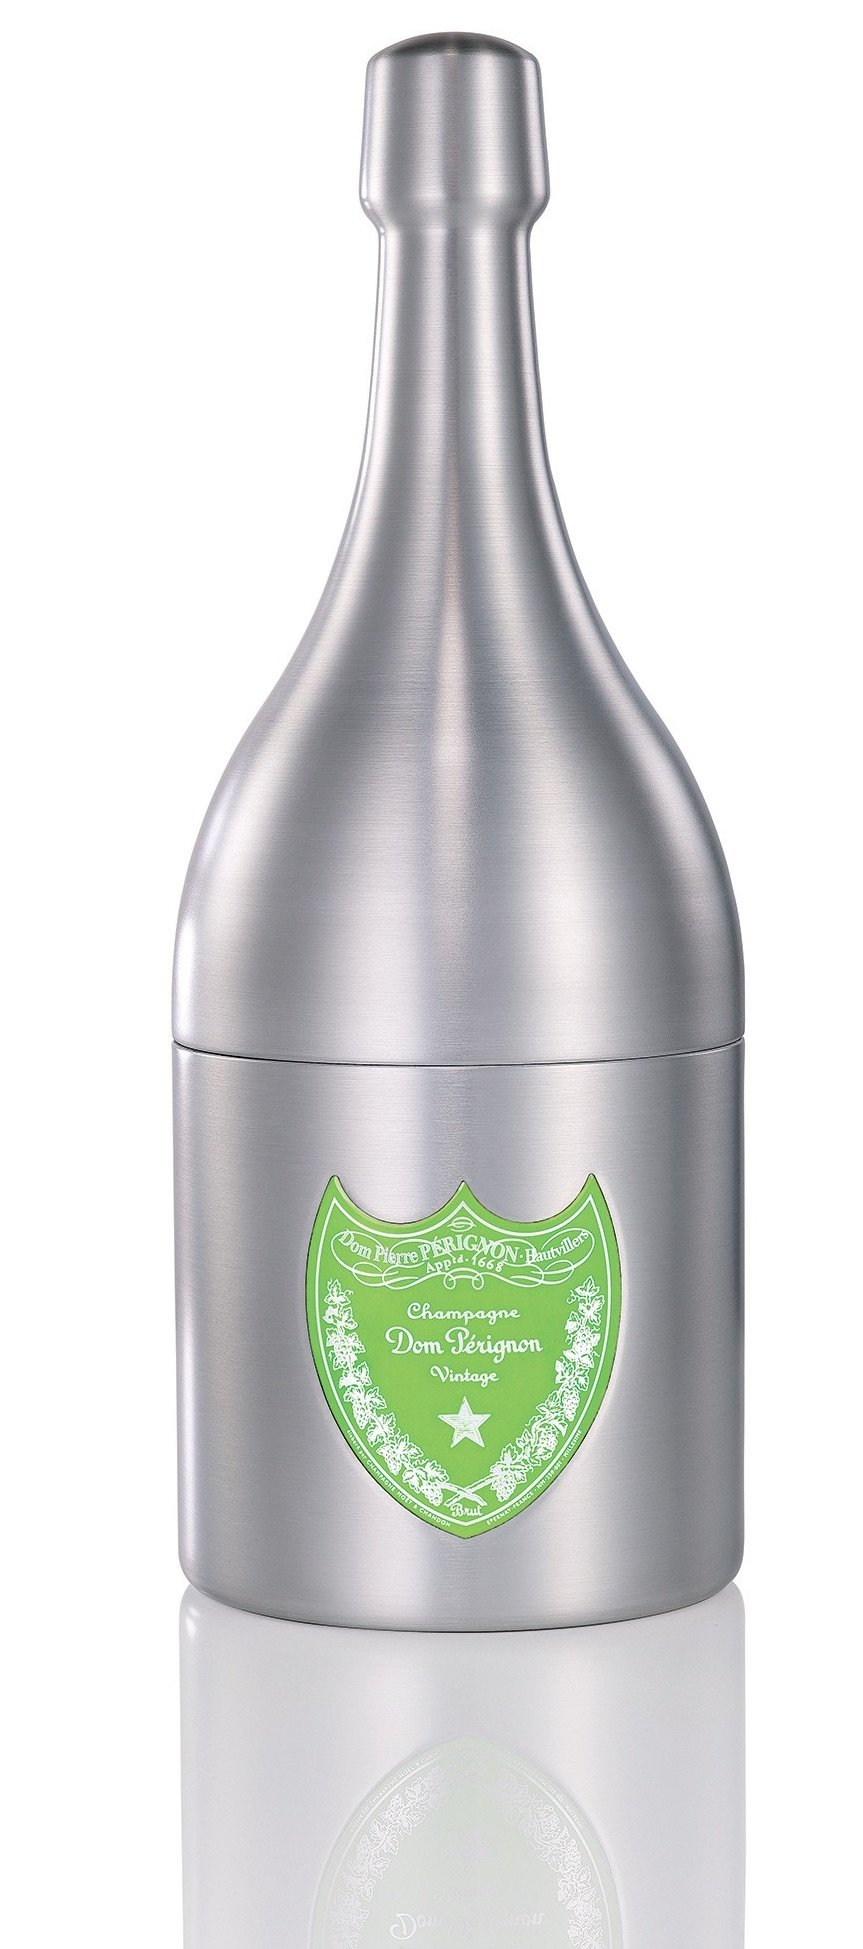 Dom Perignon Champagne Cooler Design by Marc Newson 2nd Season Green Bottle Bucket Ice Bucket Ice Bucket Container